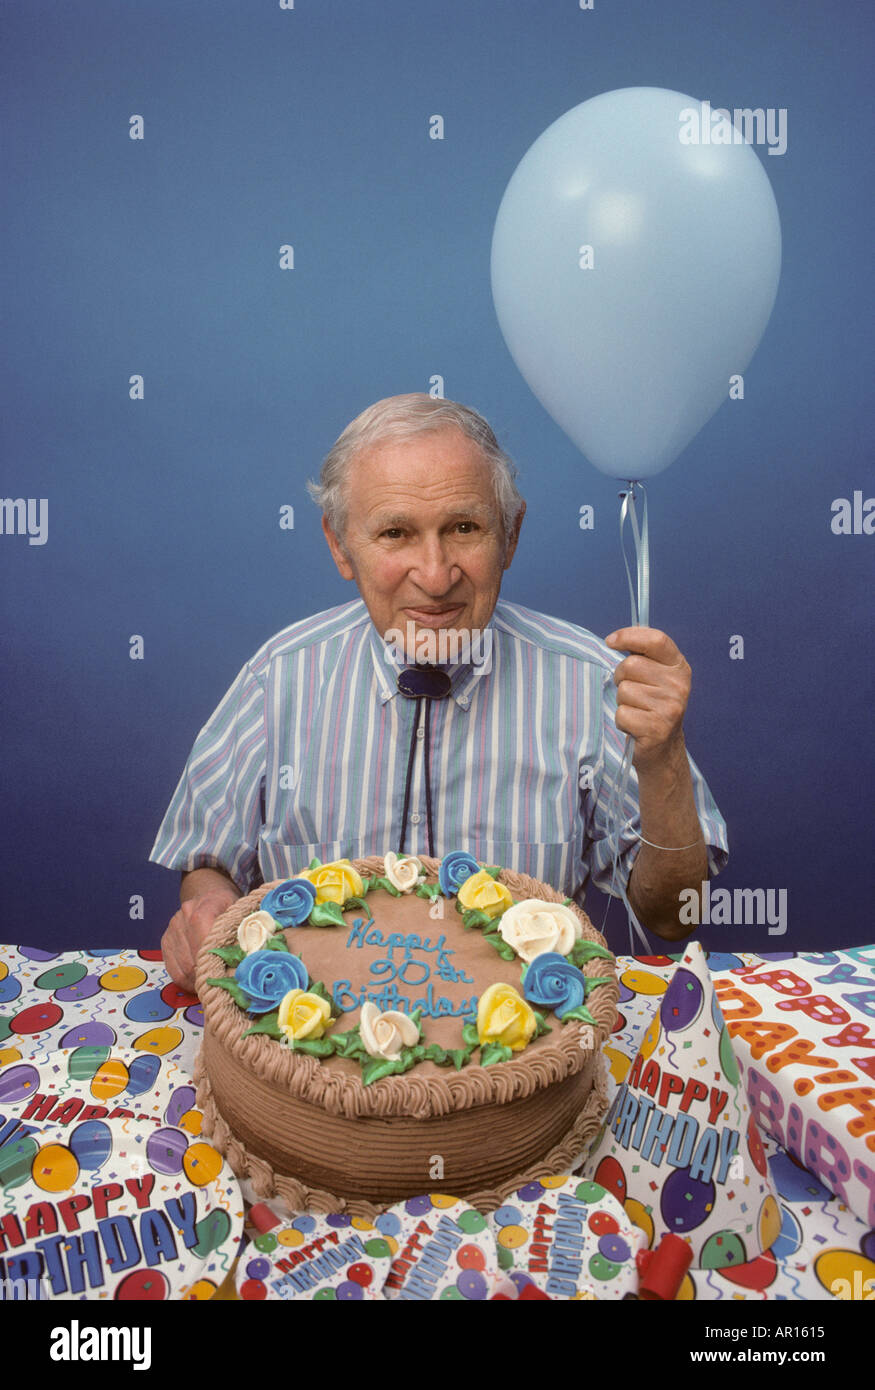 90 Year Old Man Holding Balloon With Birthday Cake Stock Photo